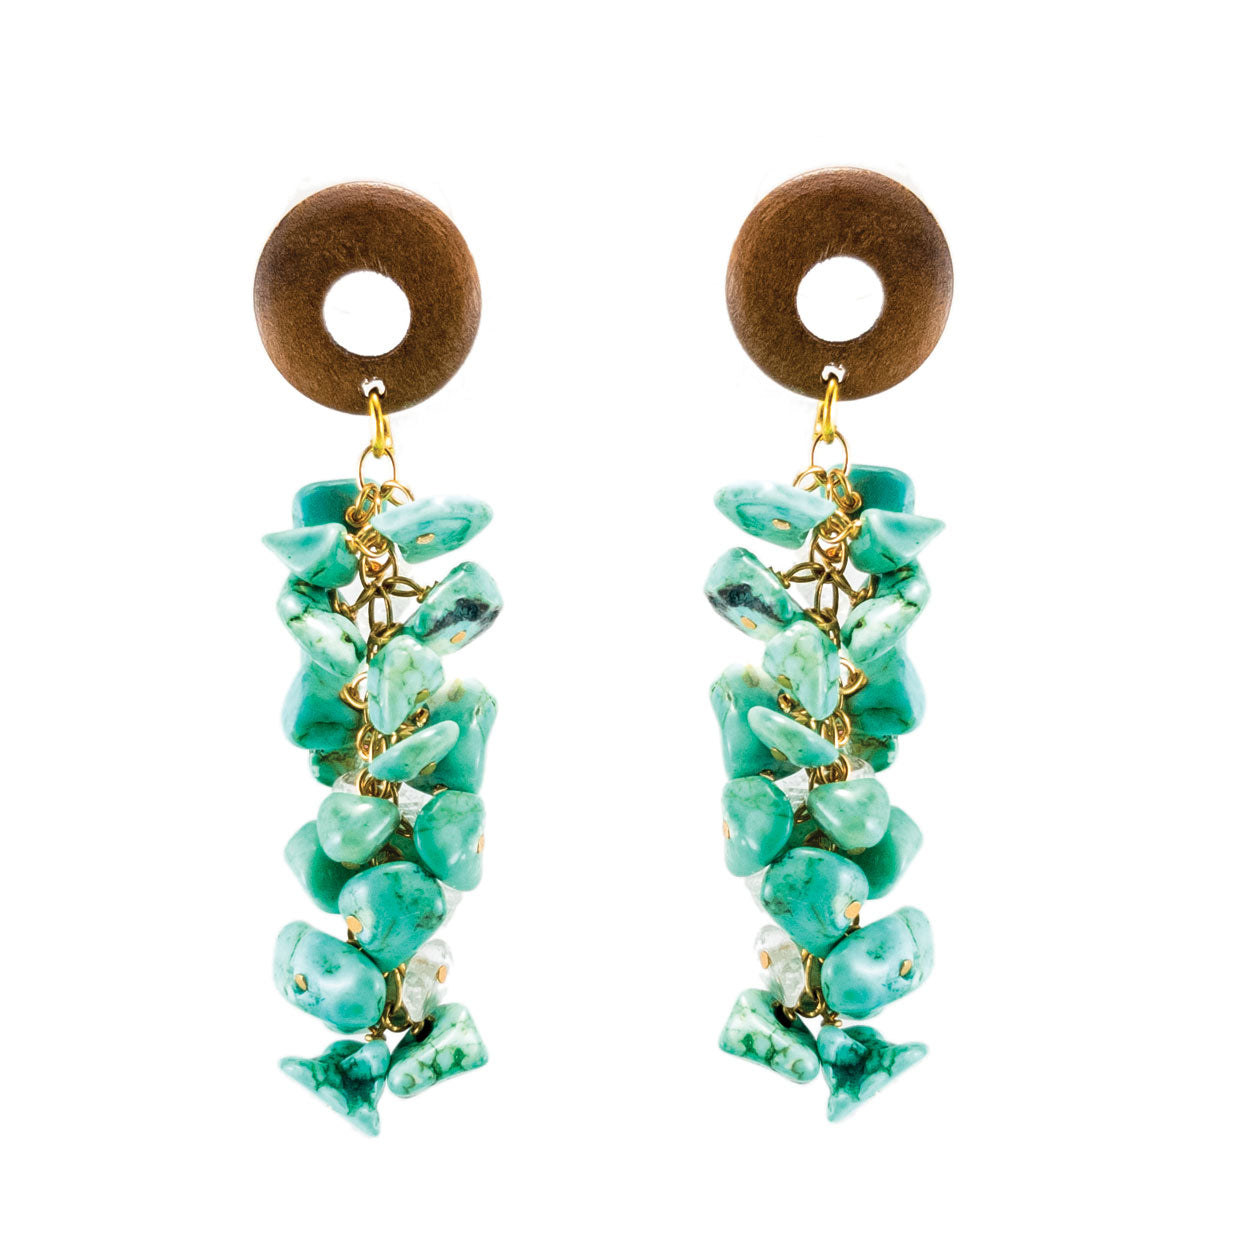 Tropical style earrings with hanging turquoise stones and wood tops